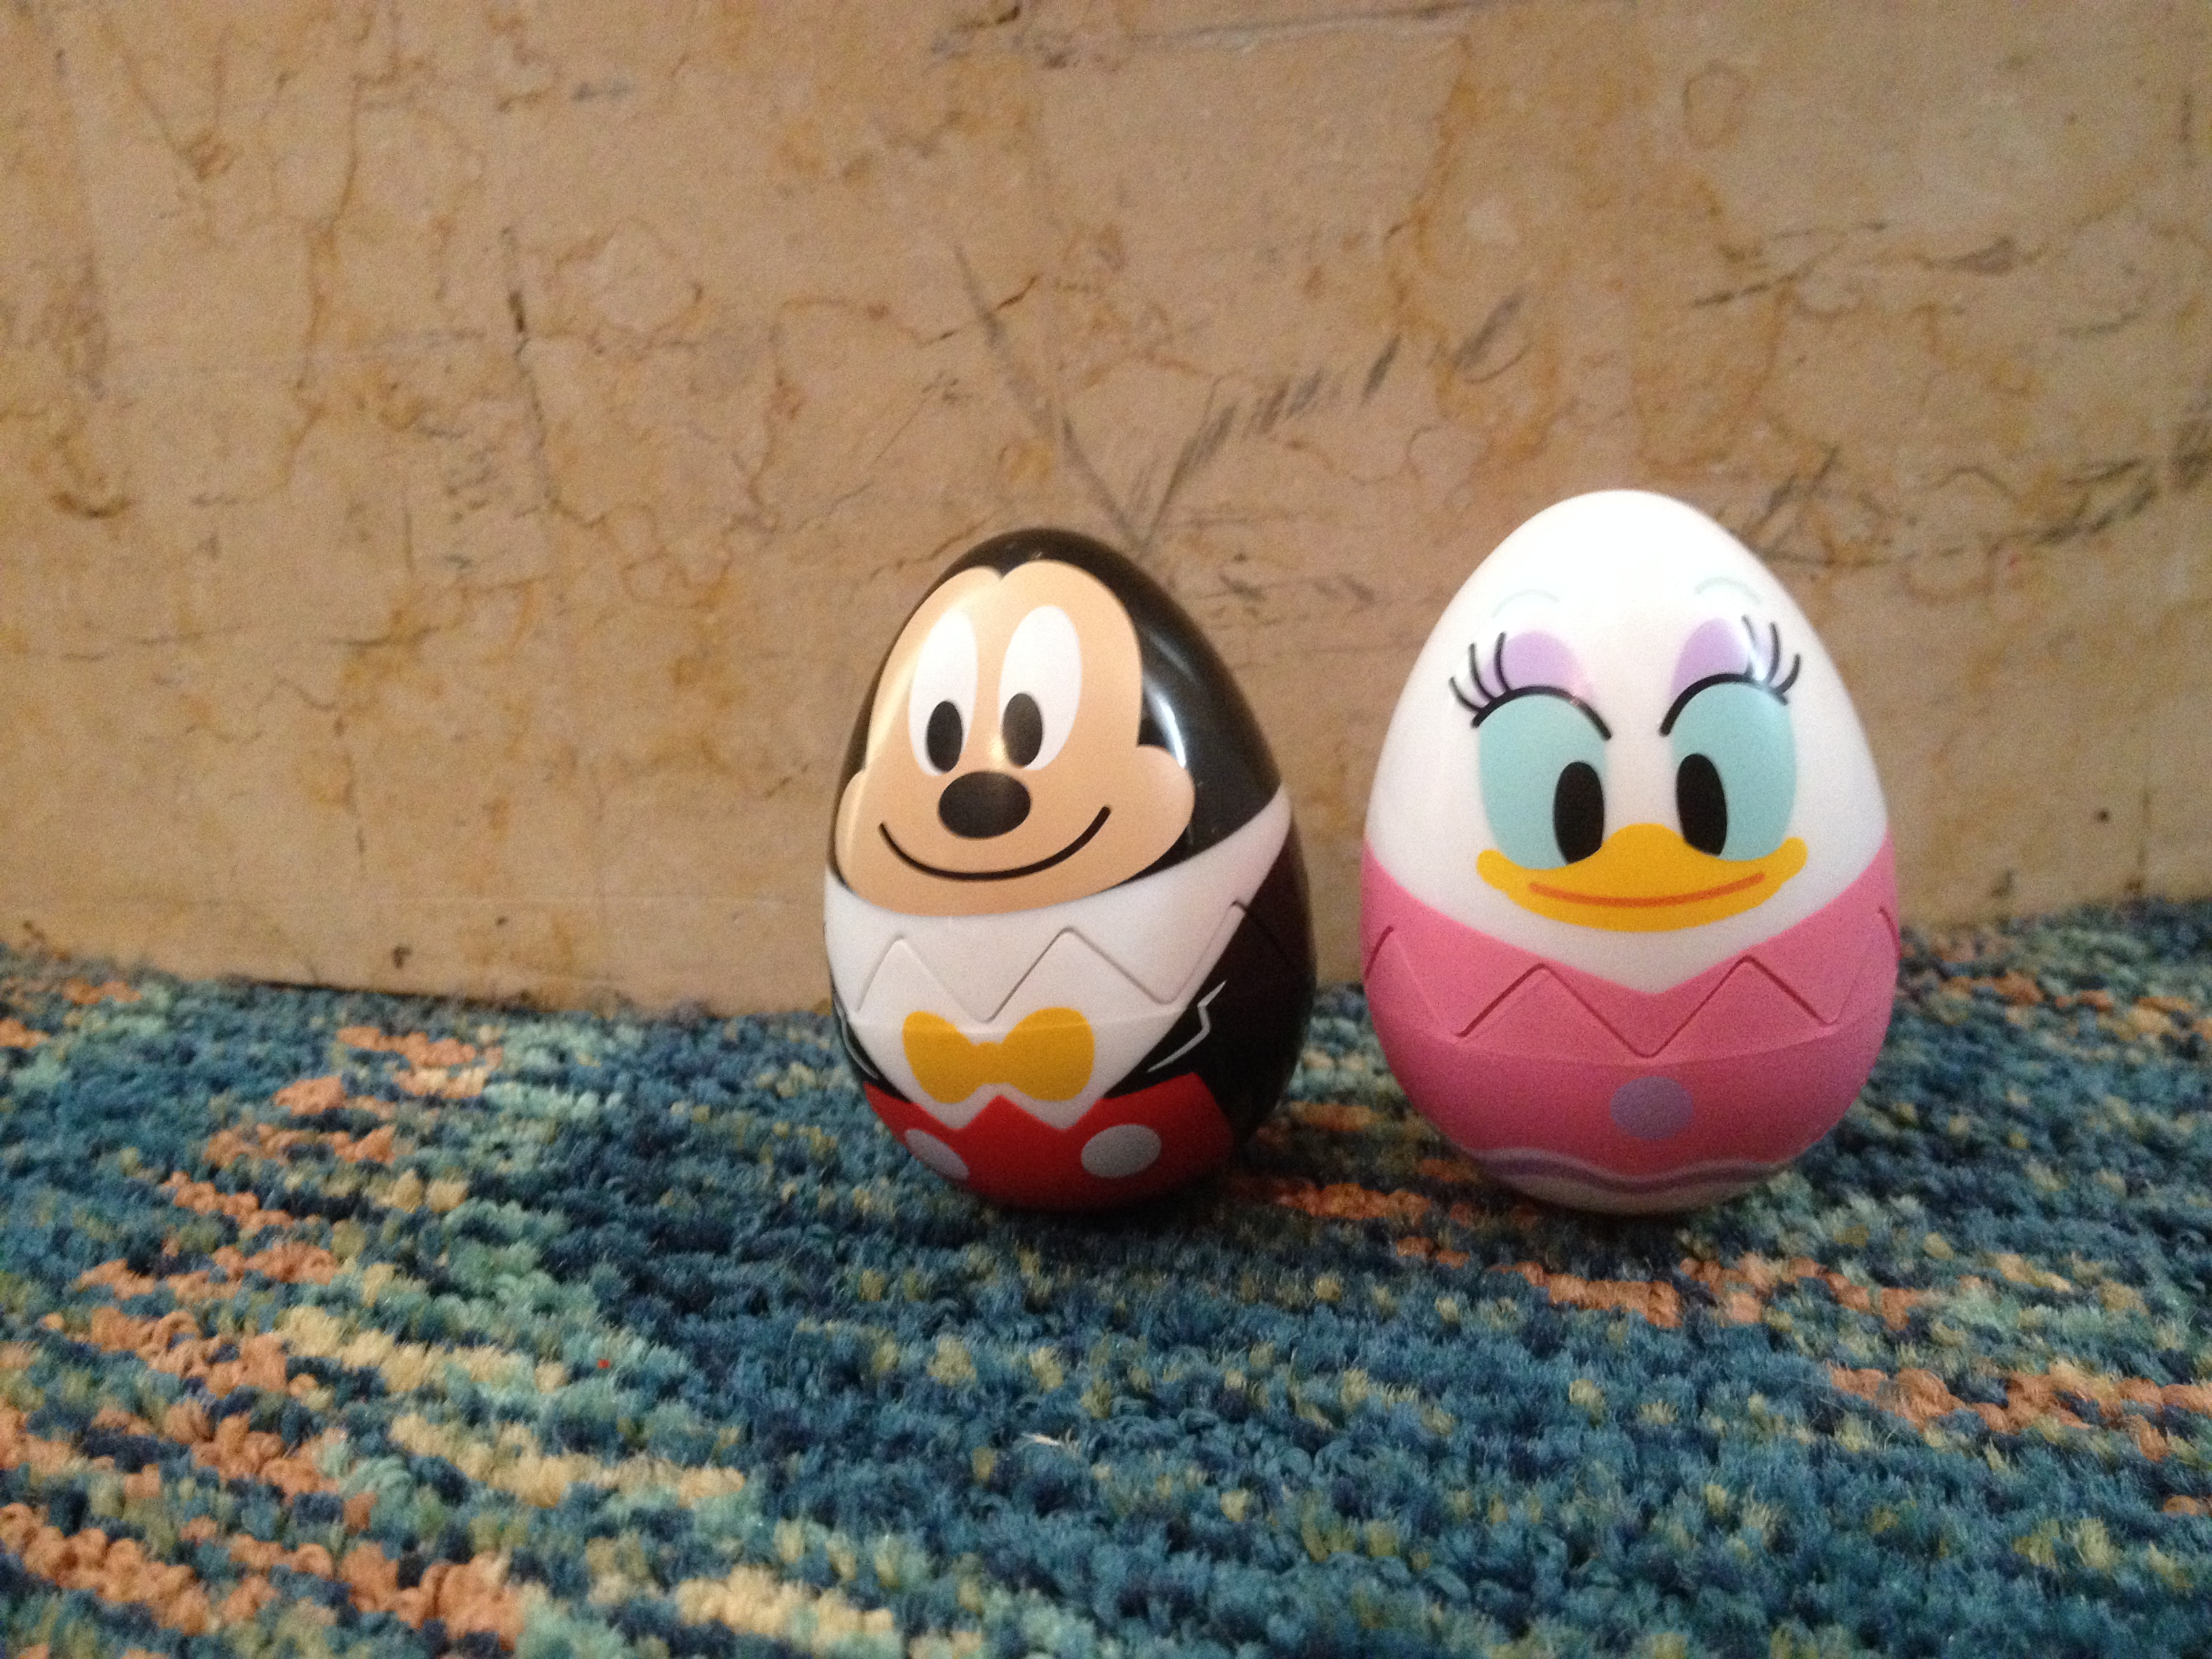 Egg-Stravaganza at Both Walt Disney World and Disneyland Resorts